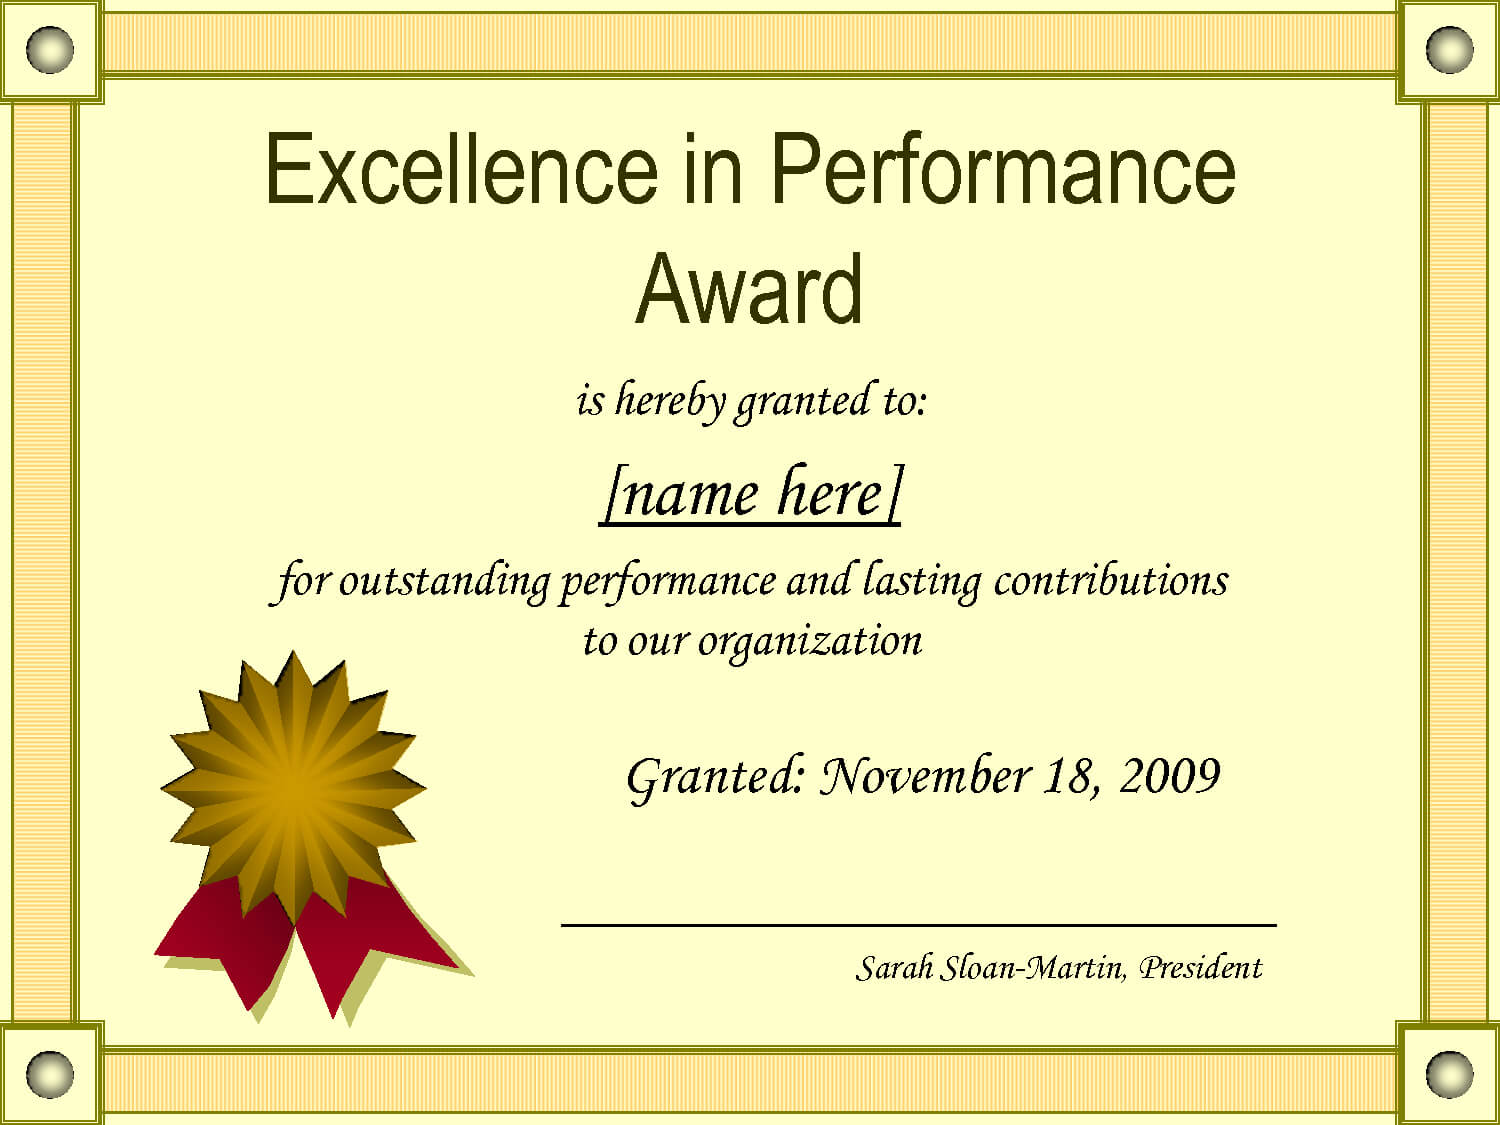 Best Performance Certificate Template - Atlantaauctionco In Best Performance Certificate Template